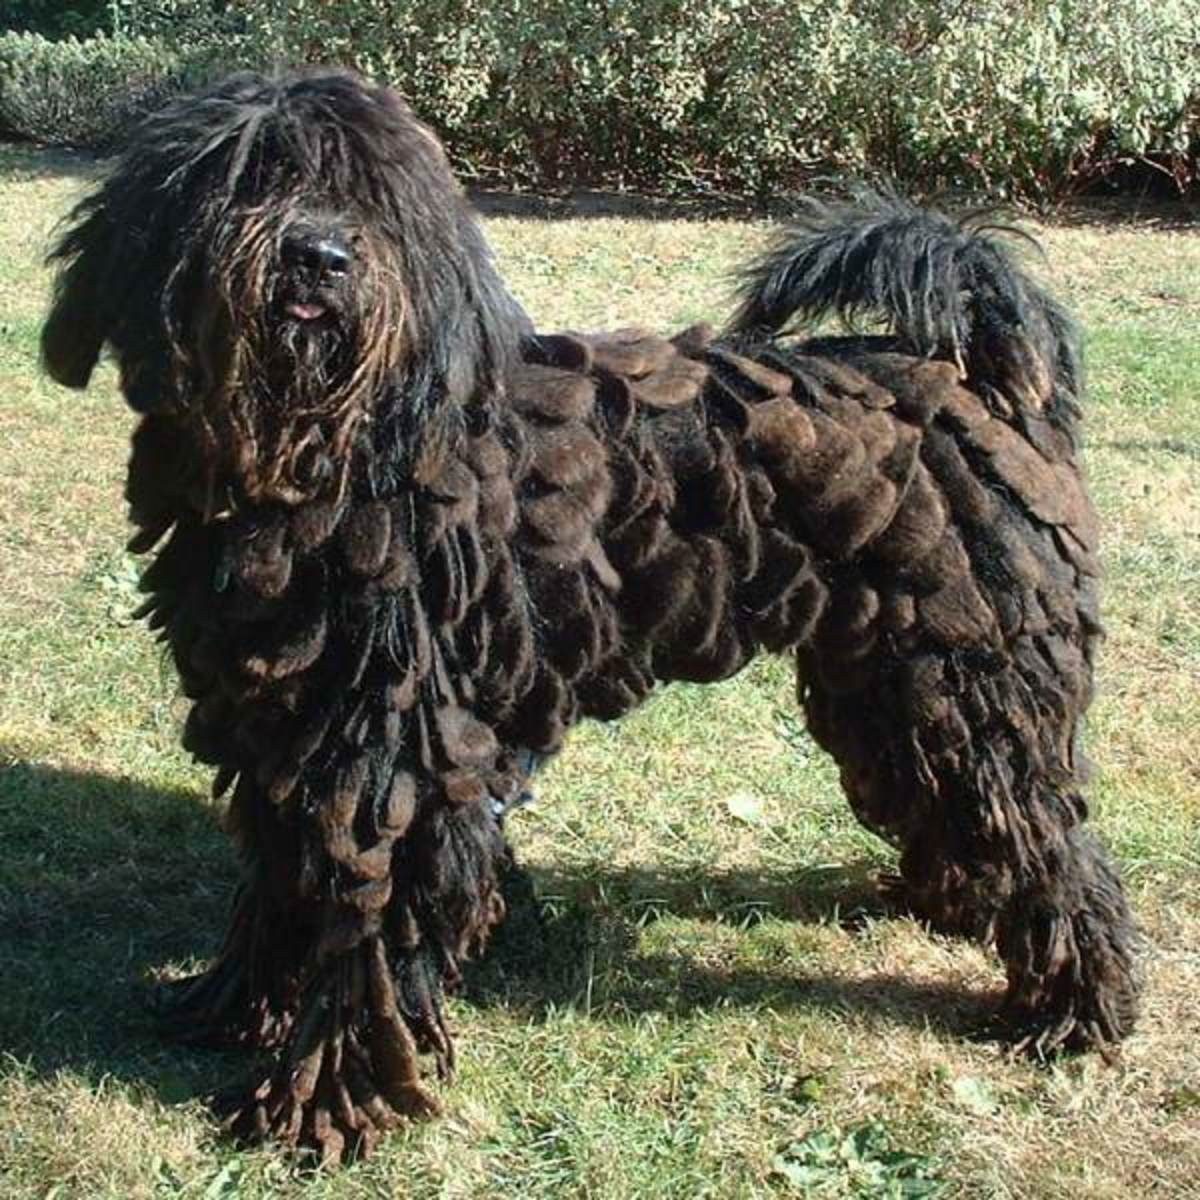 A young Bergamasco